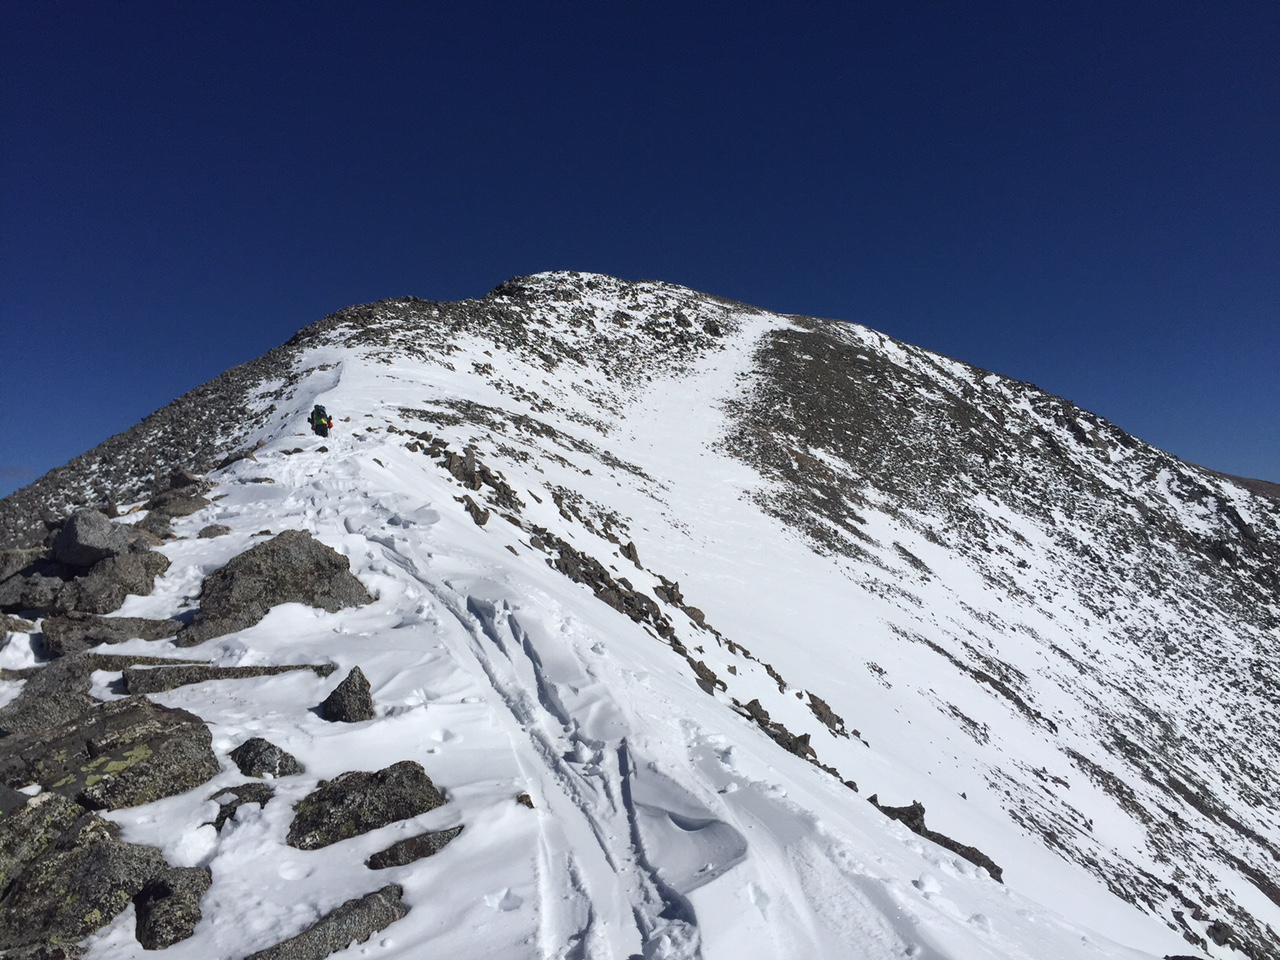 The thin ribbon on the south side of the ridge gave me just enough snow to ski!